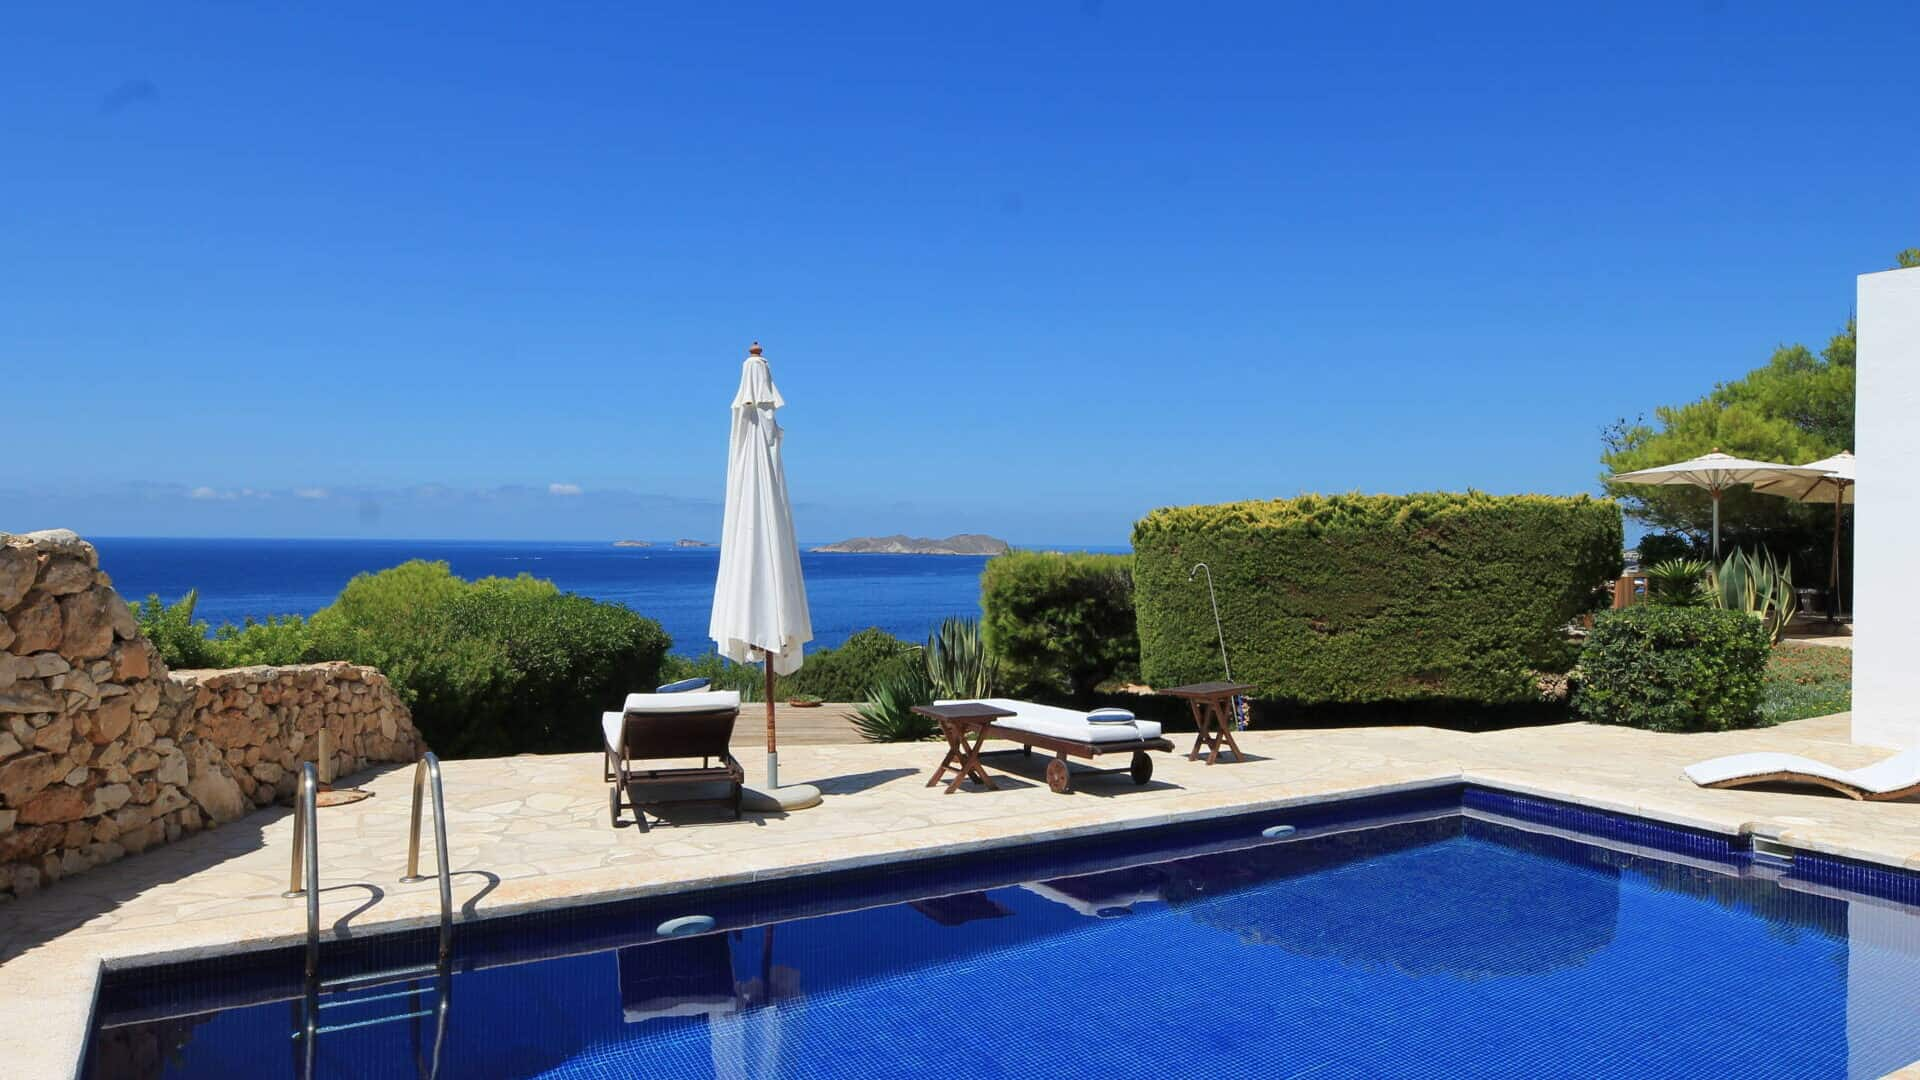 Seafront & touristic rental license! Spectacular villa with breathtaking views